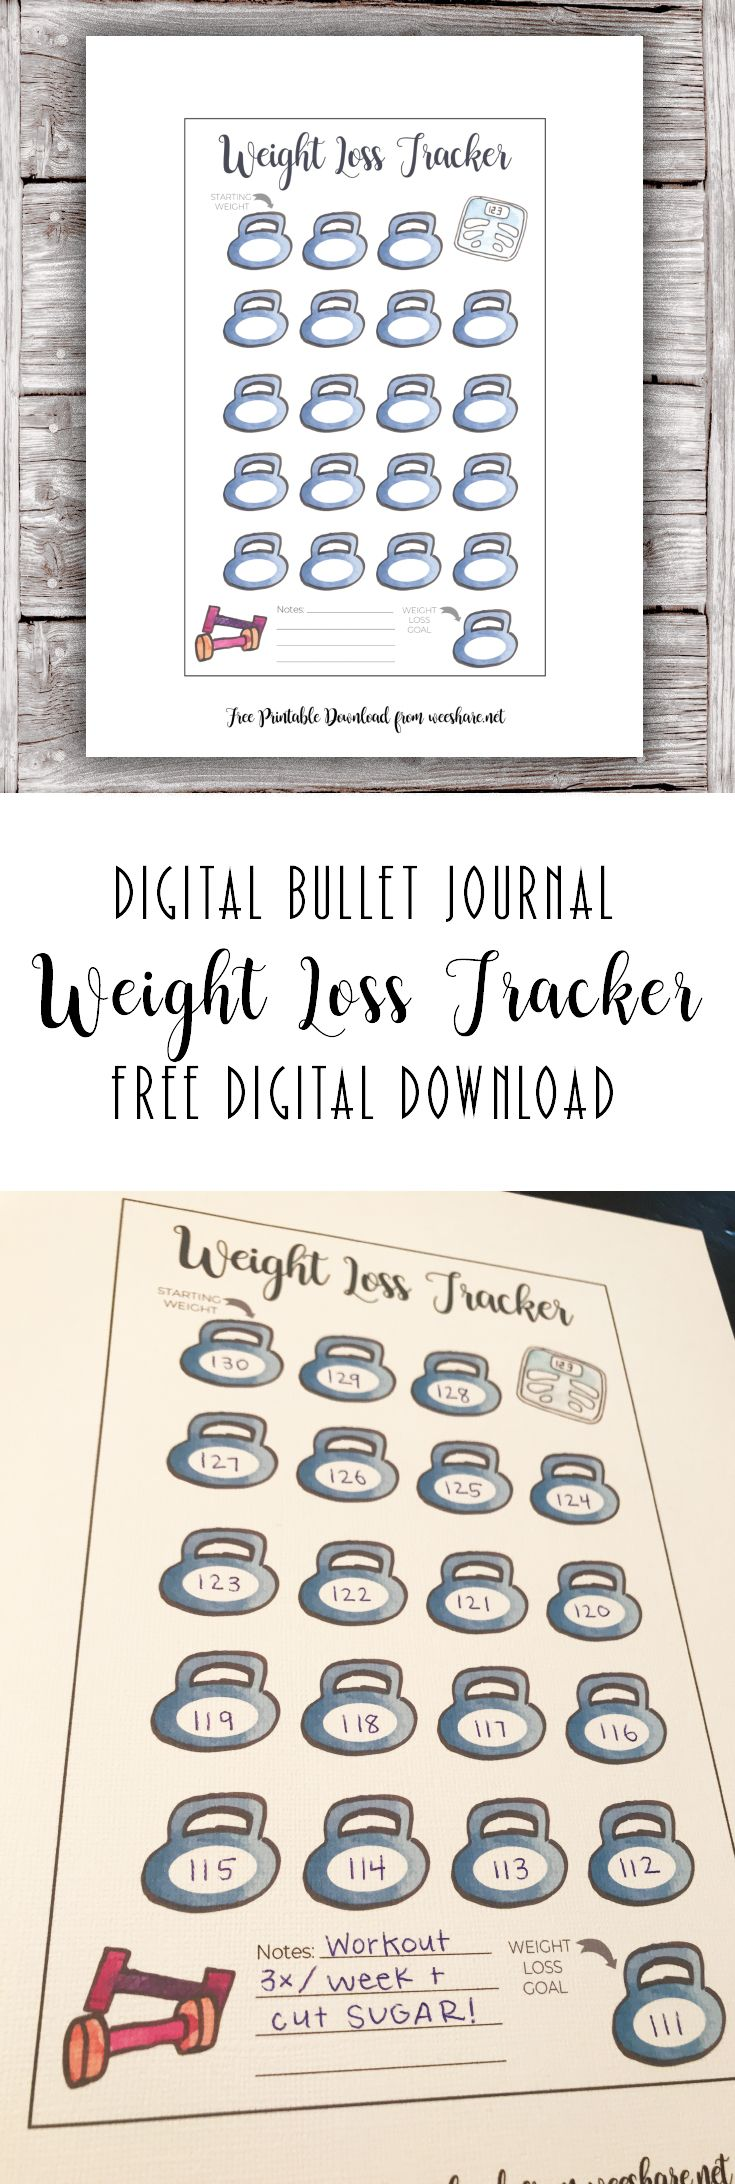 Weight Loss Tracker – Digital Bullet Journal Free Printable